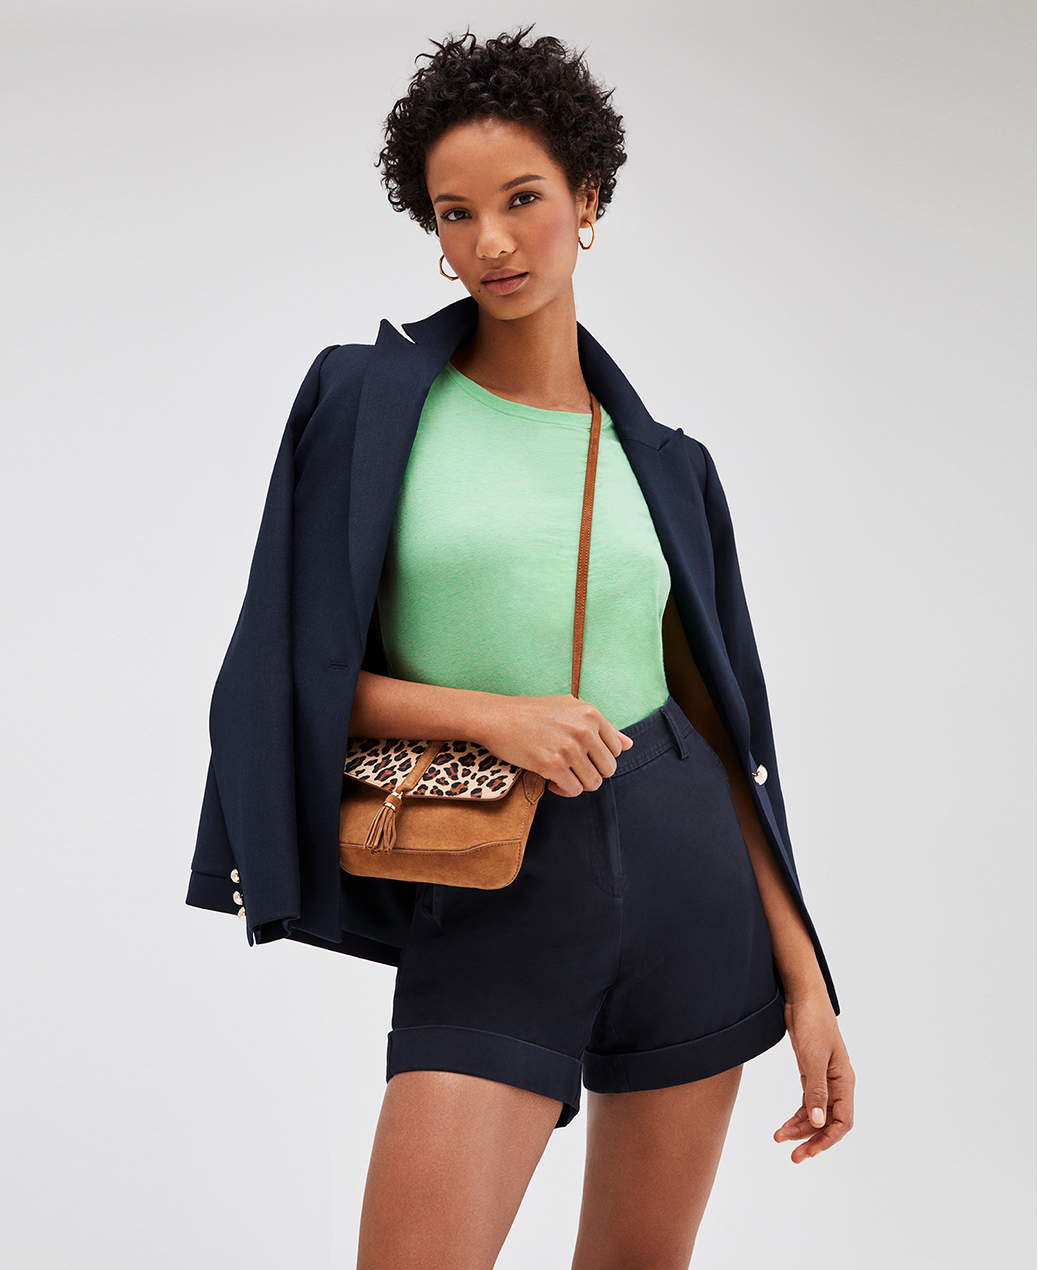 Model wears a navy blue jacket, green tshirt with navy blue shorts and a brown and leopard print cross body bag